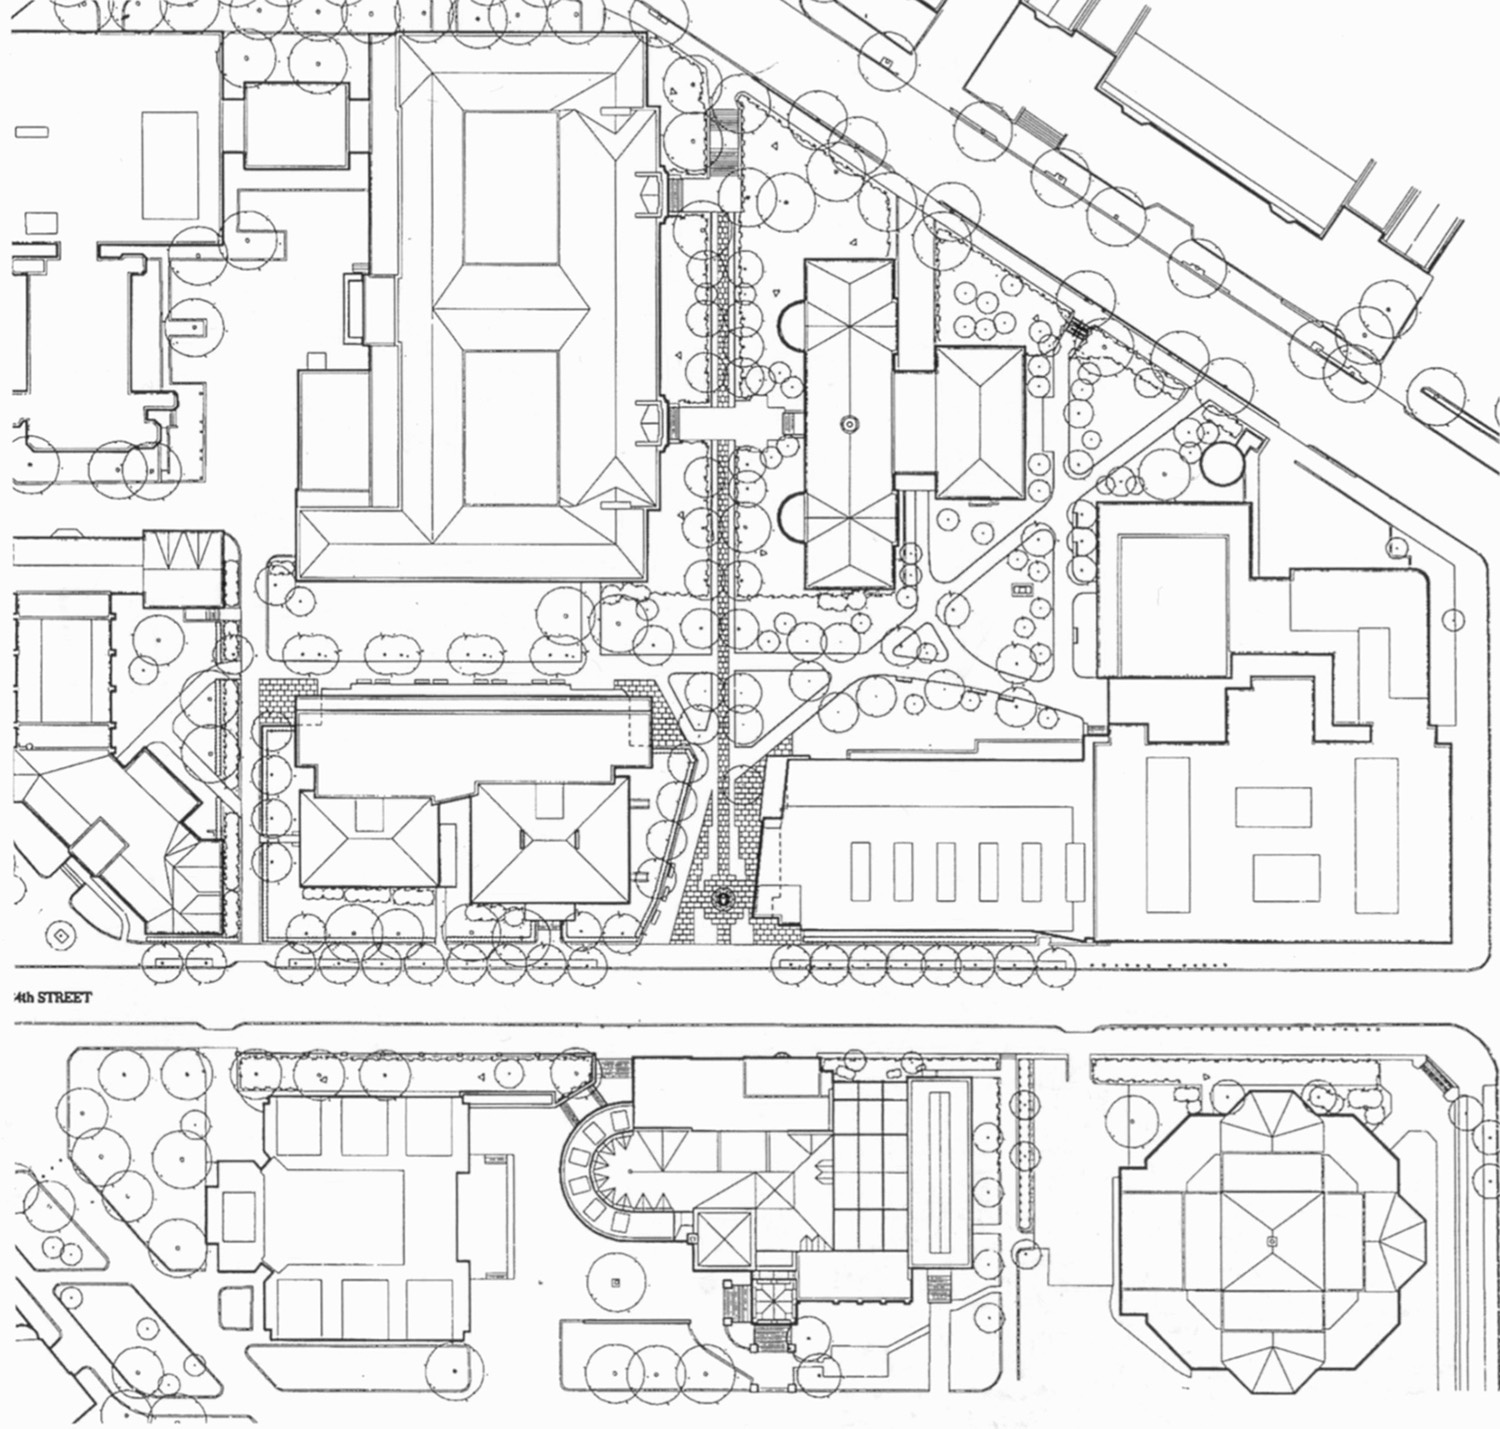 Site plan (Furness's library at bottom)